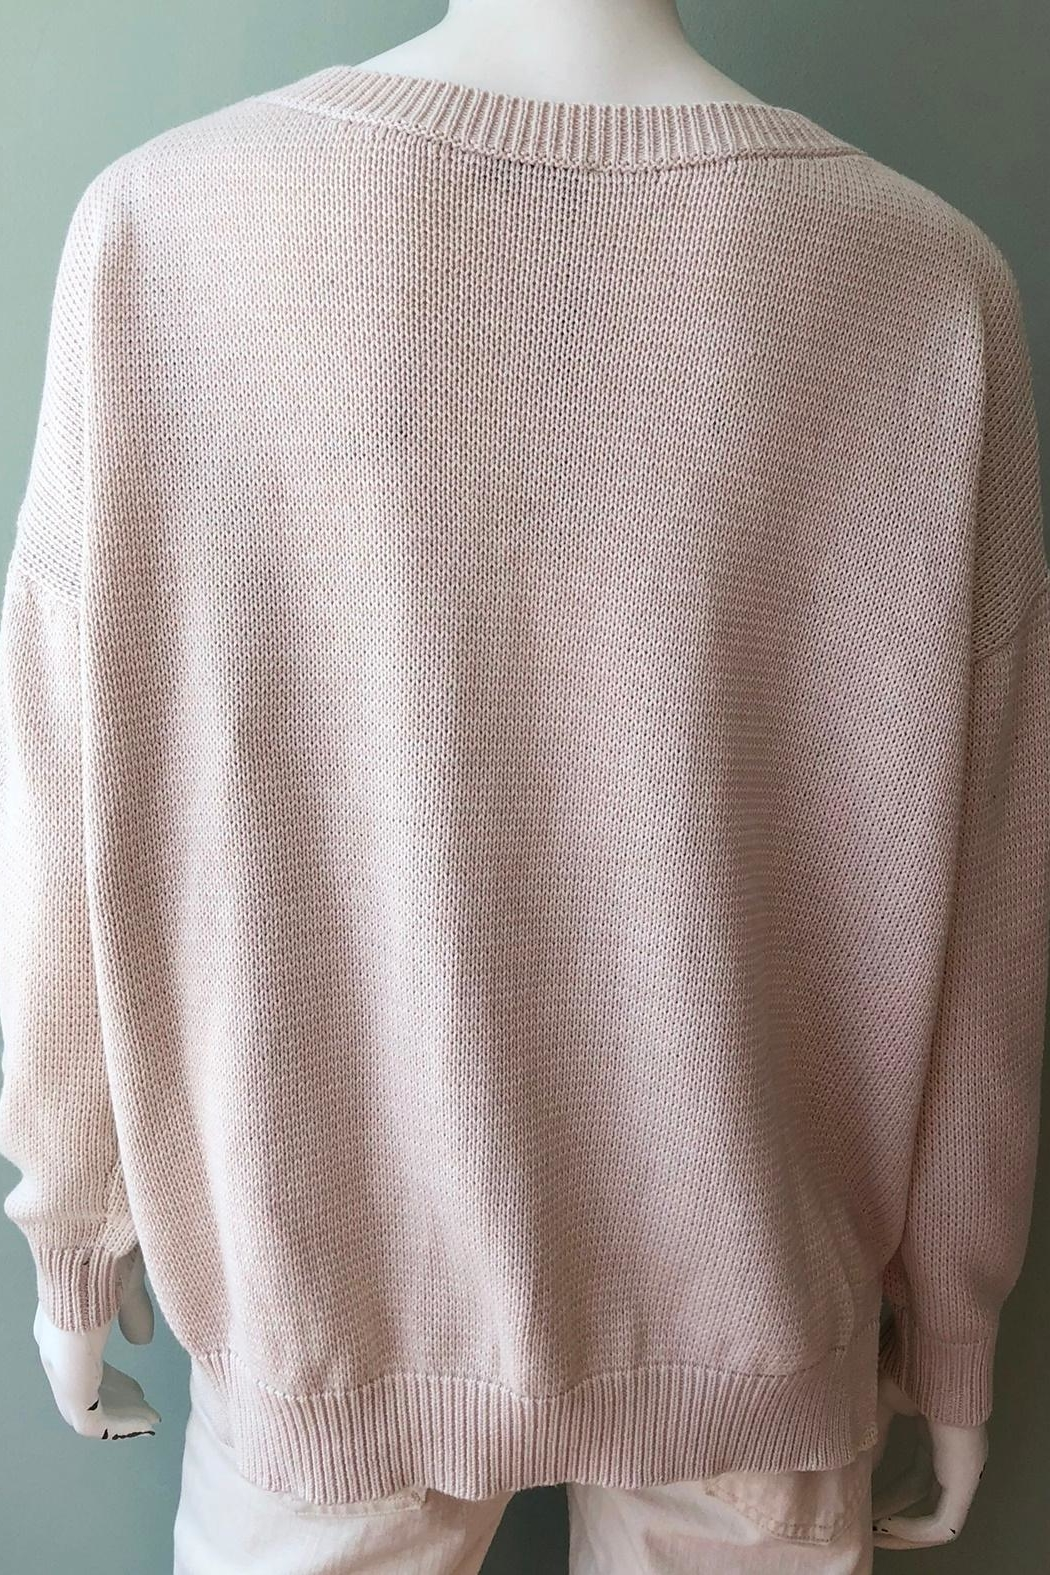 Emerson Fry Carolyn Sweater - Side Cropped Image